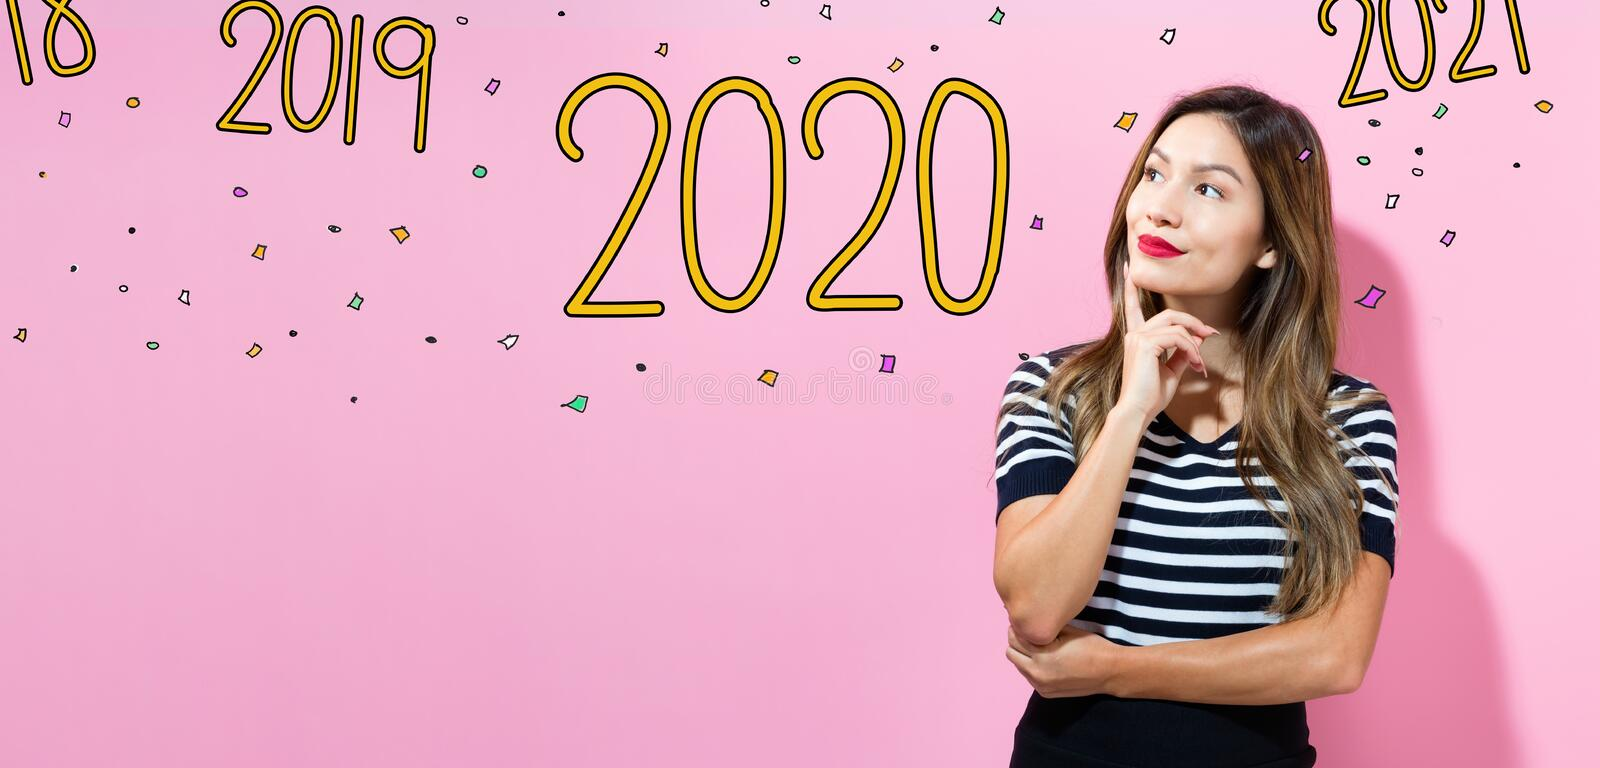 2020 with young woman stock photos